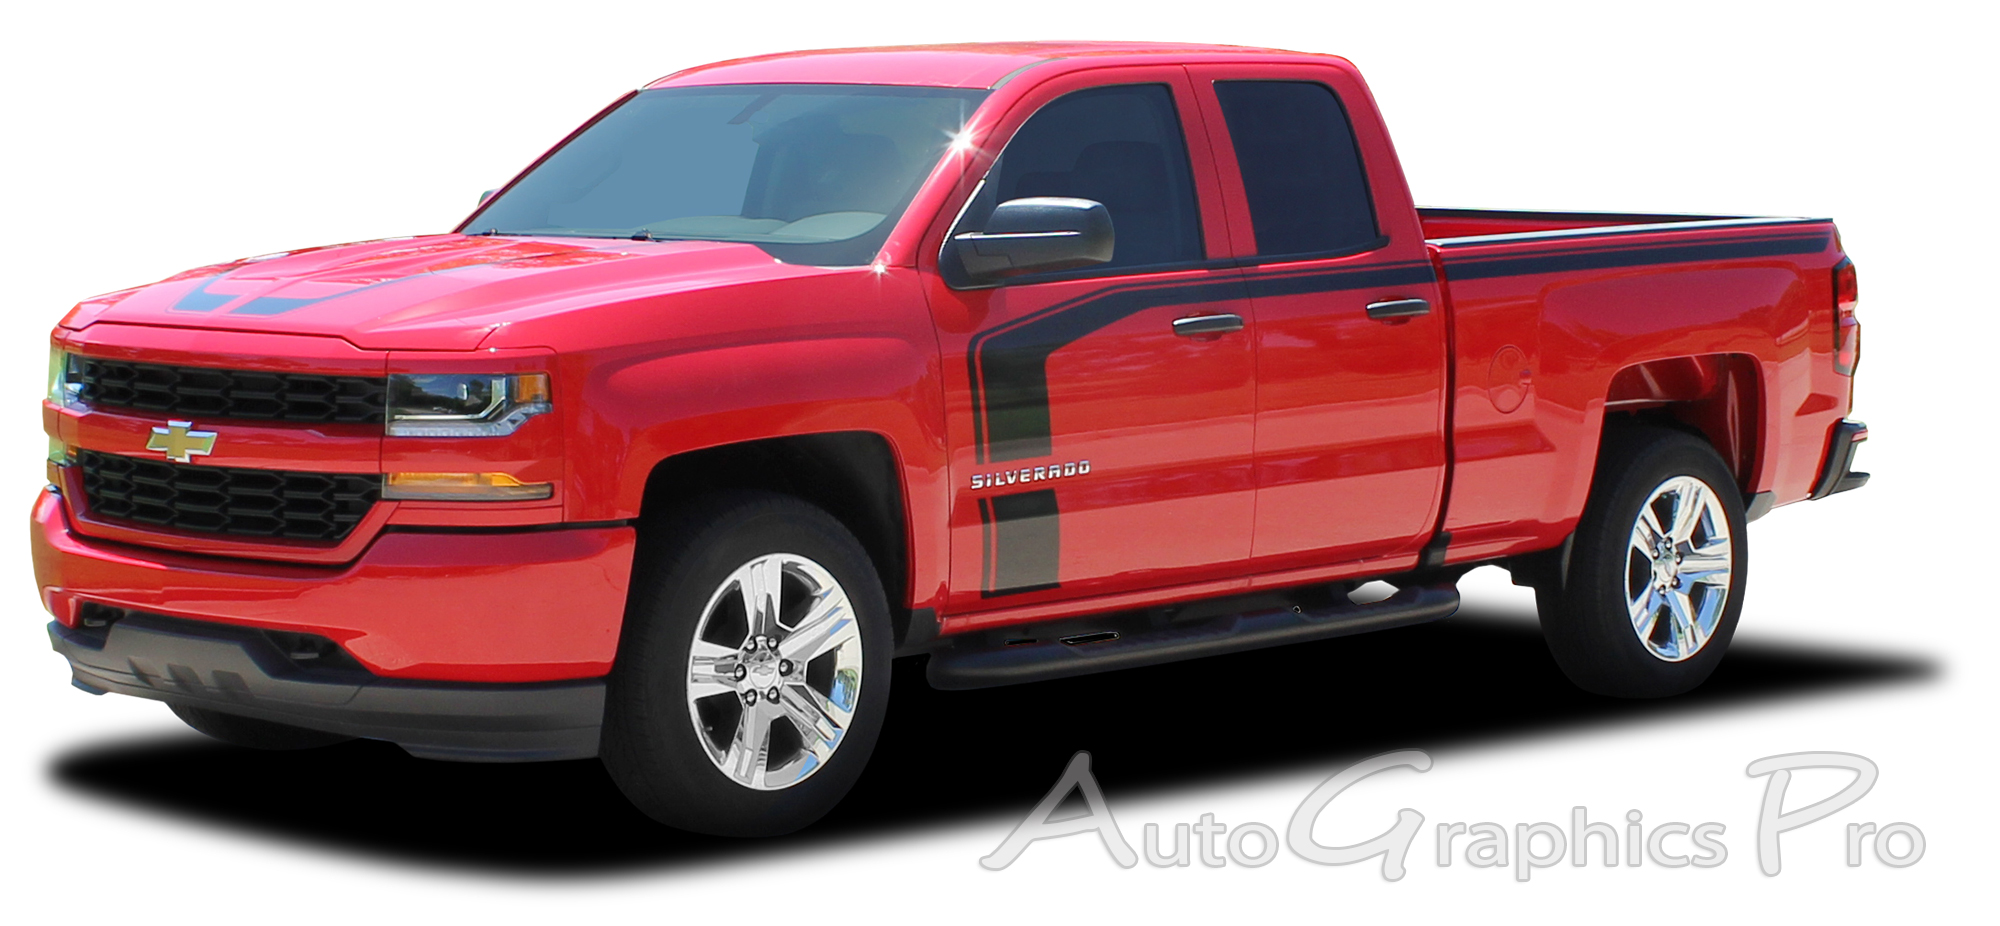 2016 2017 2018 chevy silverado special edition rally style flow truck hood racing stripes side. Black Bedroom Furniture Sets. Home Design Ideas